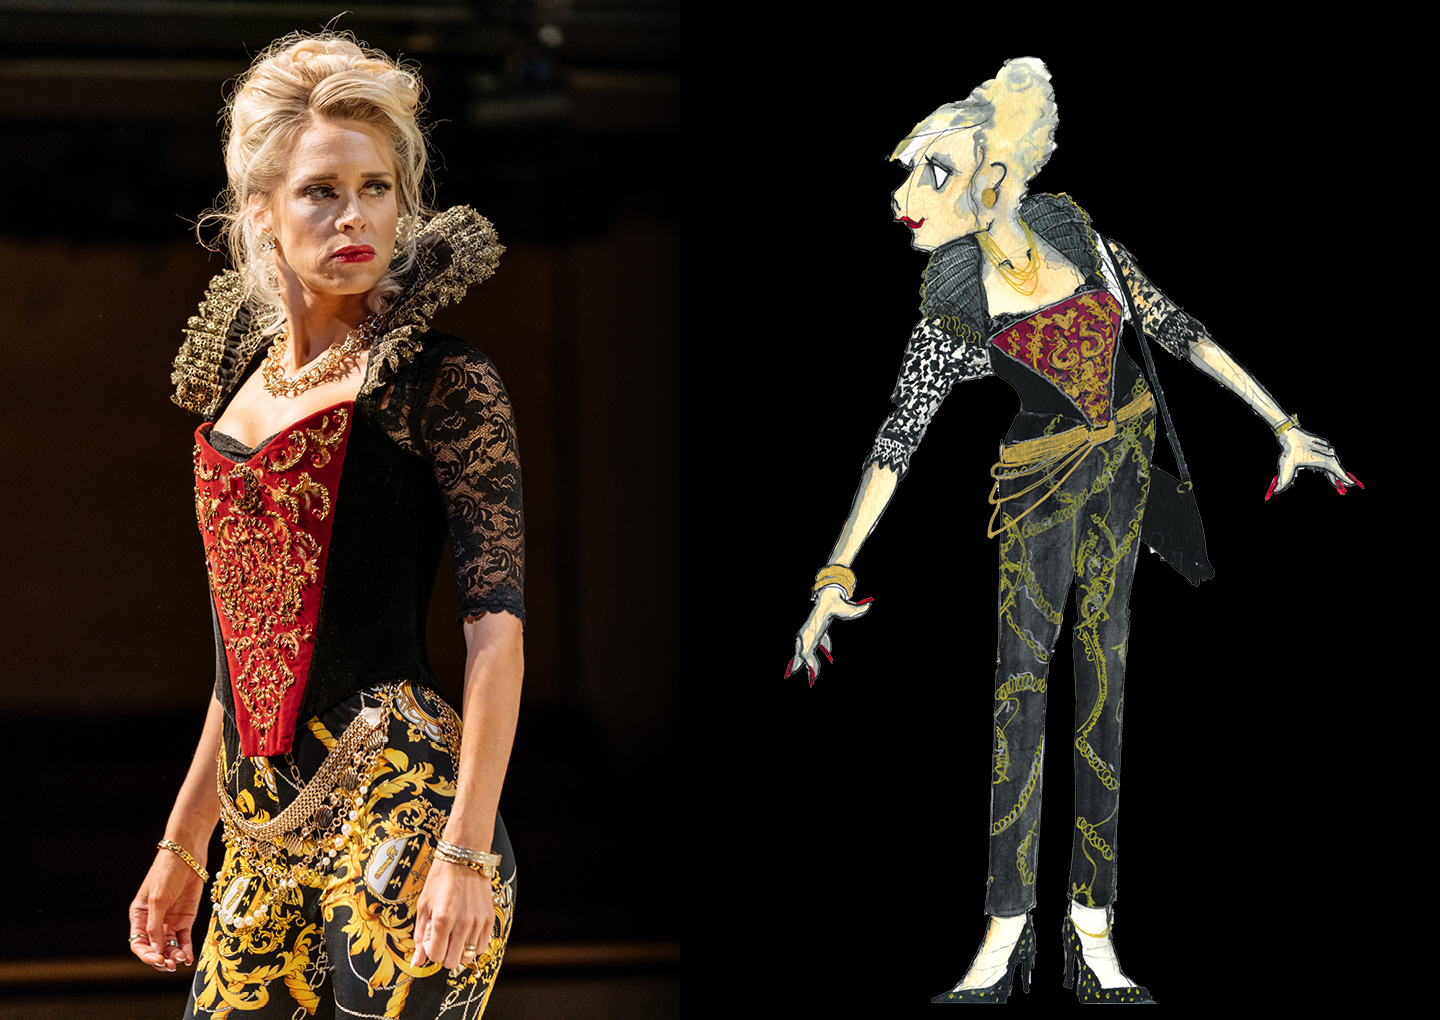 Actor Beth Cordingly in an ornate corseted costume with leggings and a high collar next to a drawing of her costume